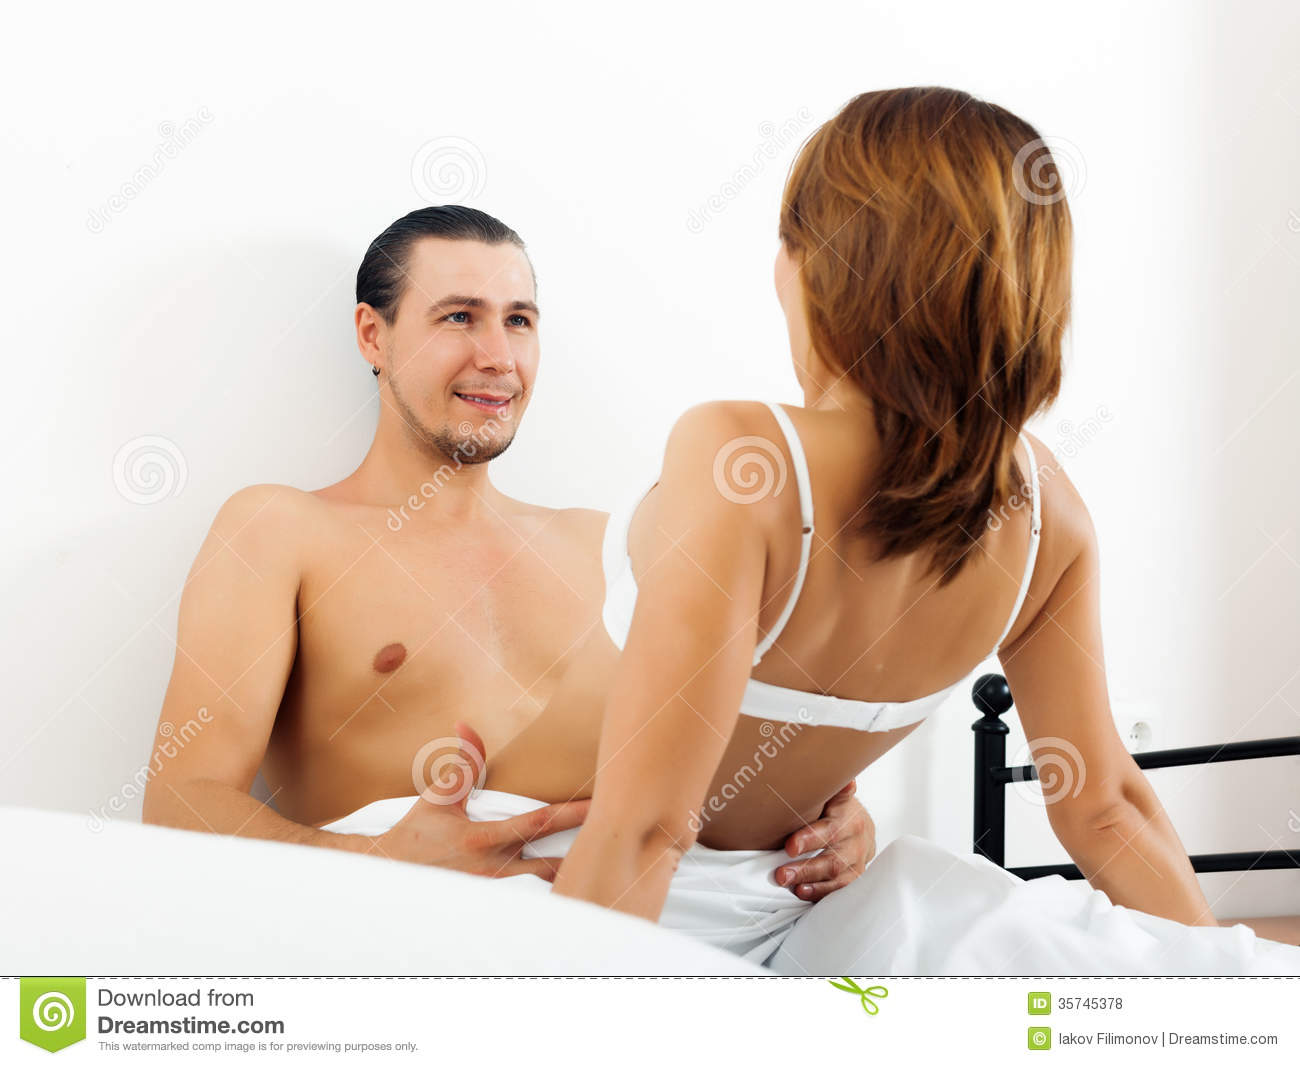 A guy and a girl having sex